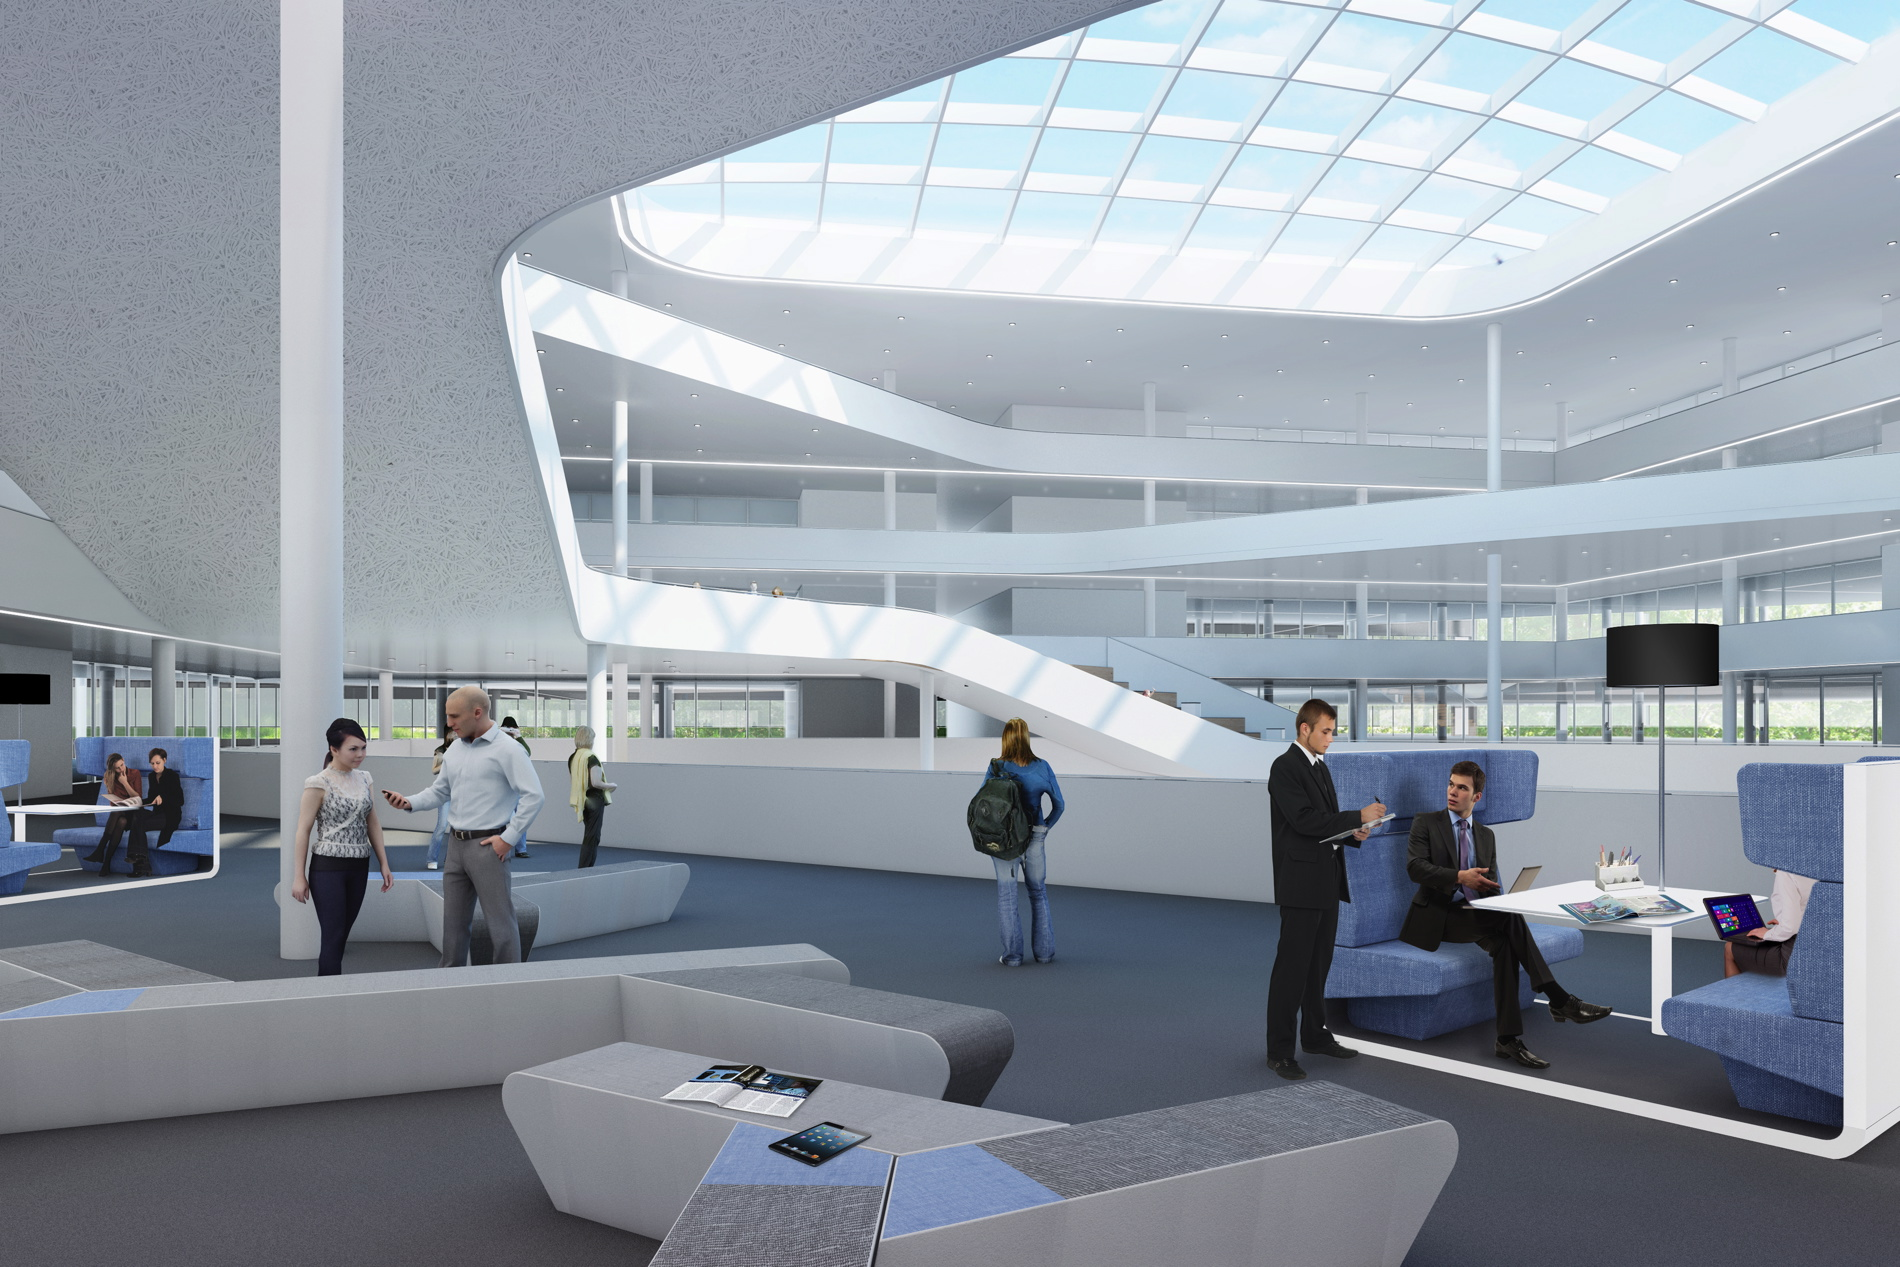 Bmw Investing 400 Million Euros In Expansion Of The Fiz In Munich